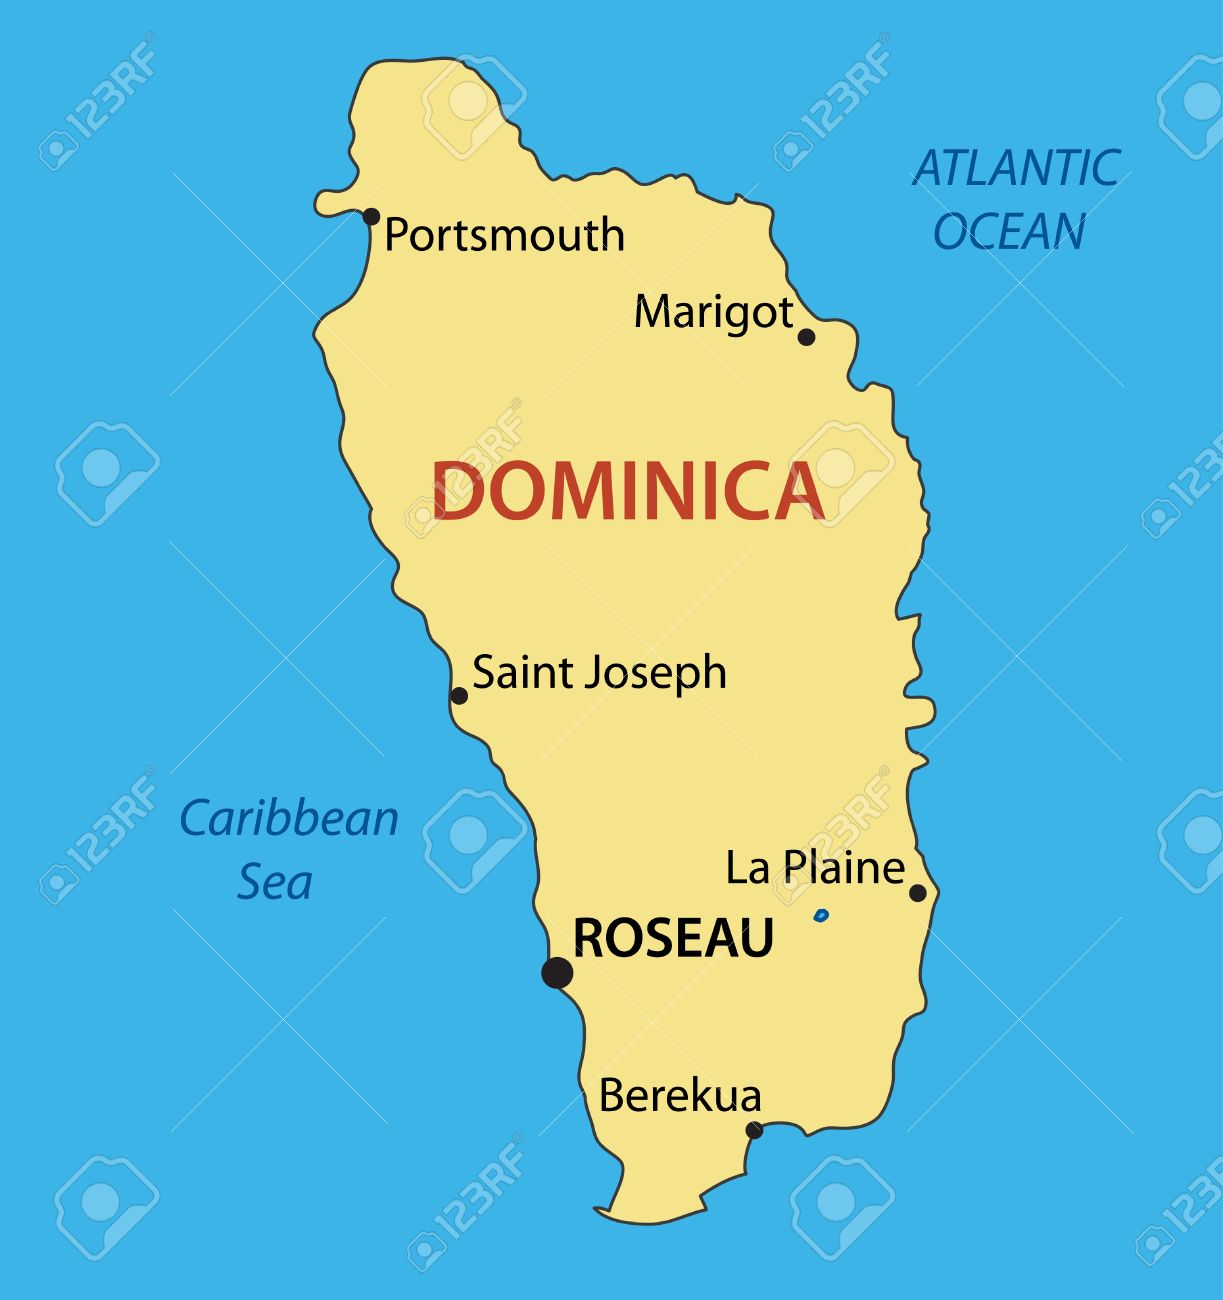 Commonwealth Of Dominica Vector Map Royalty Free Cliparts - Map of dominica caribbean sea